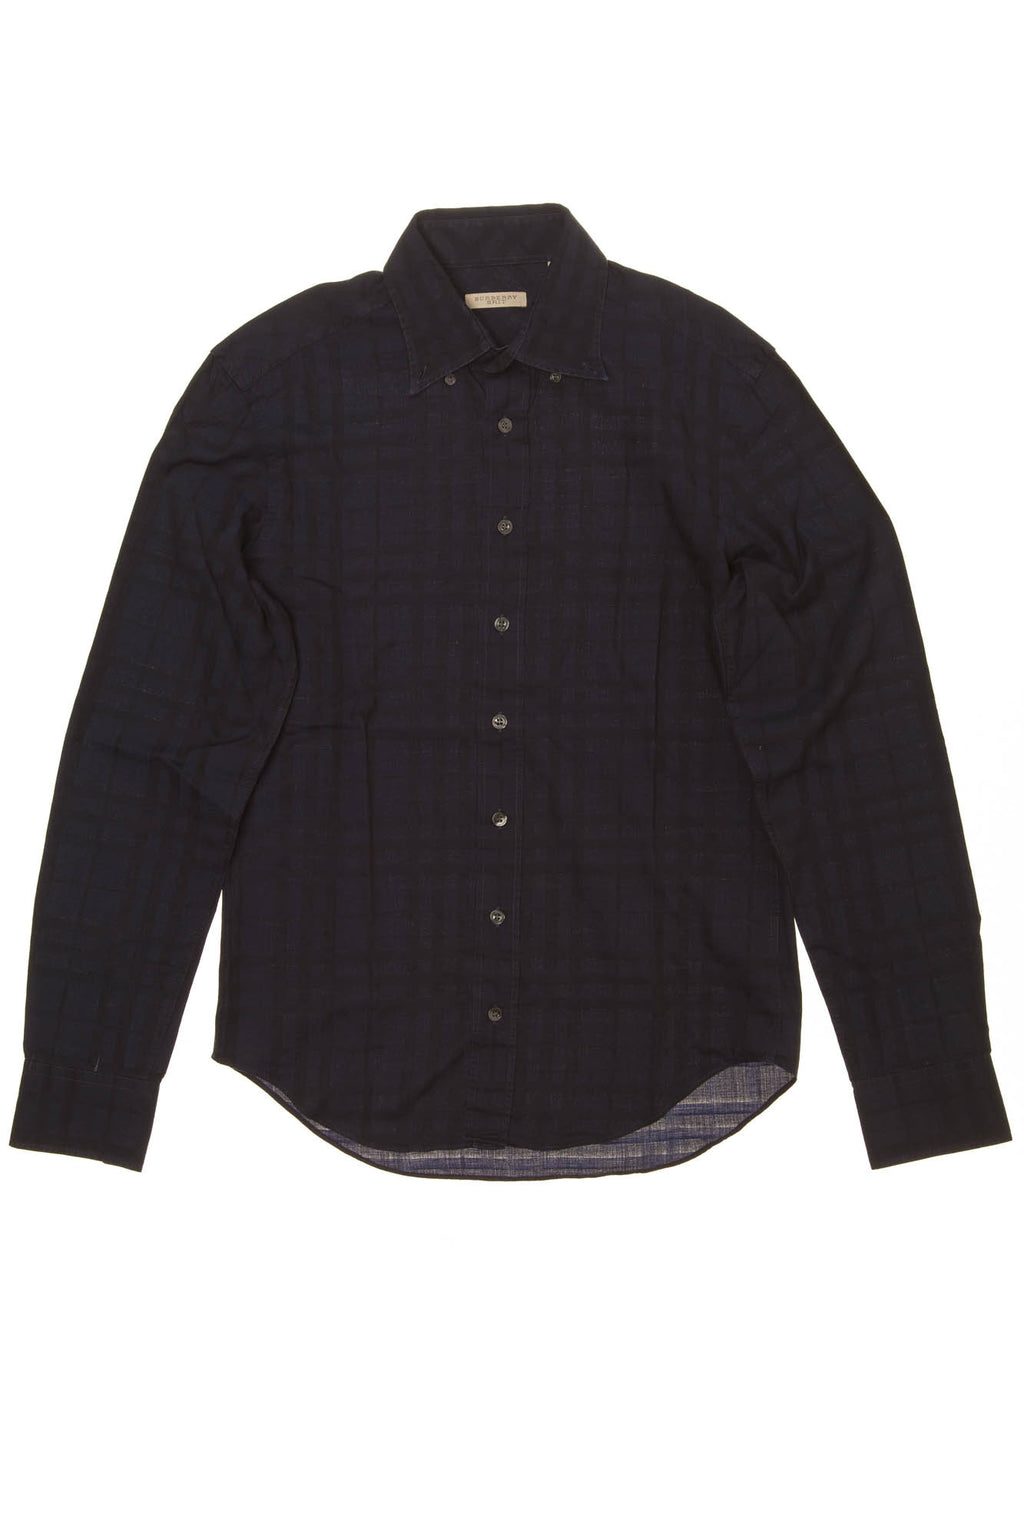 Burberry Brit - Dark Blue Checkered Long Sleeve Button Down -  Men's  size S